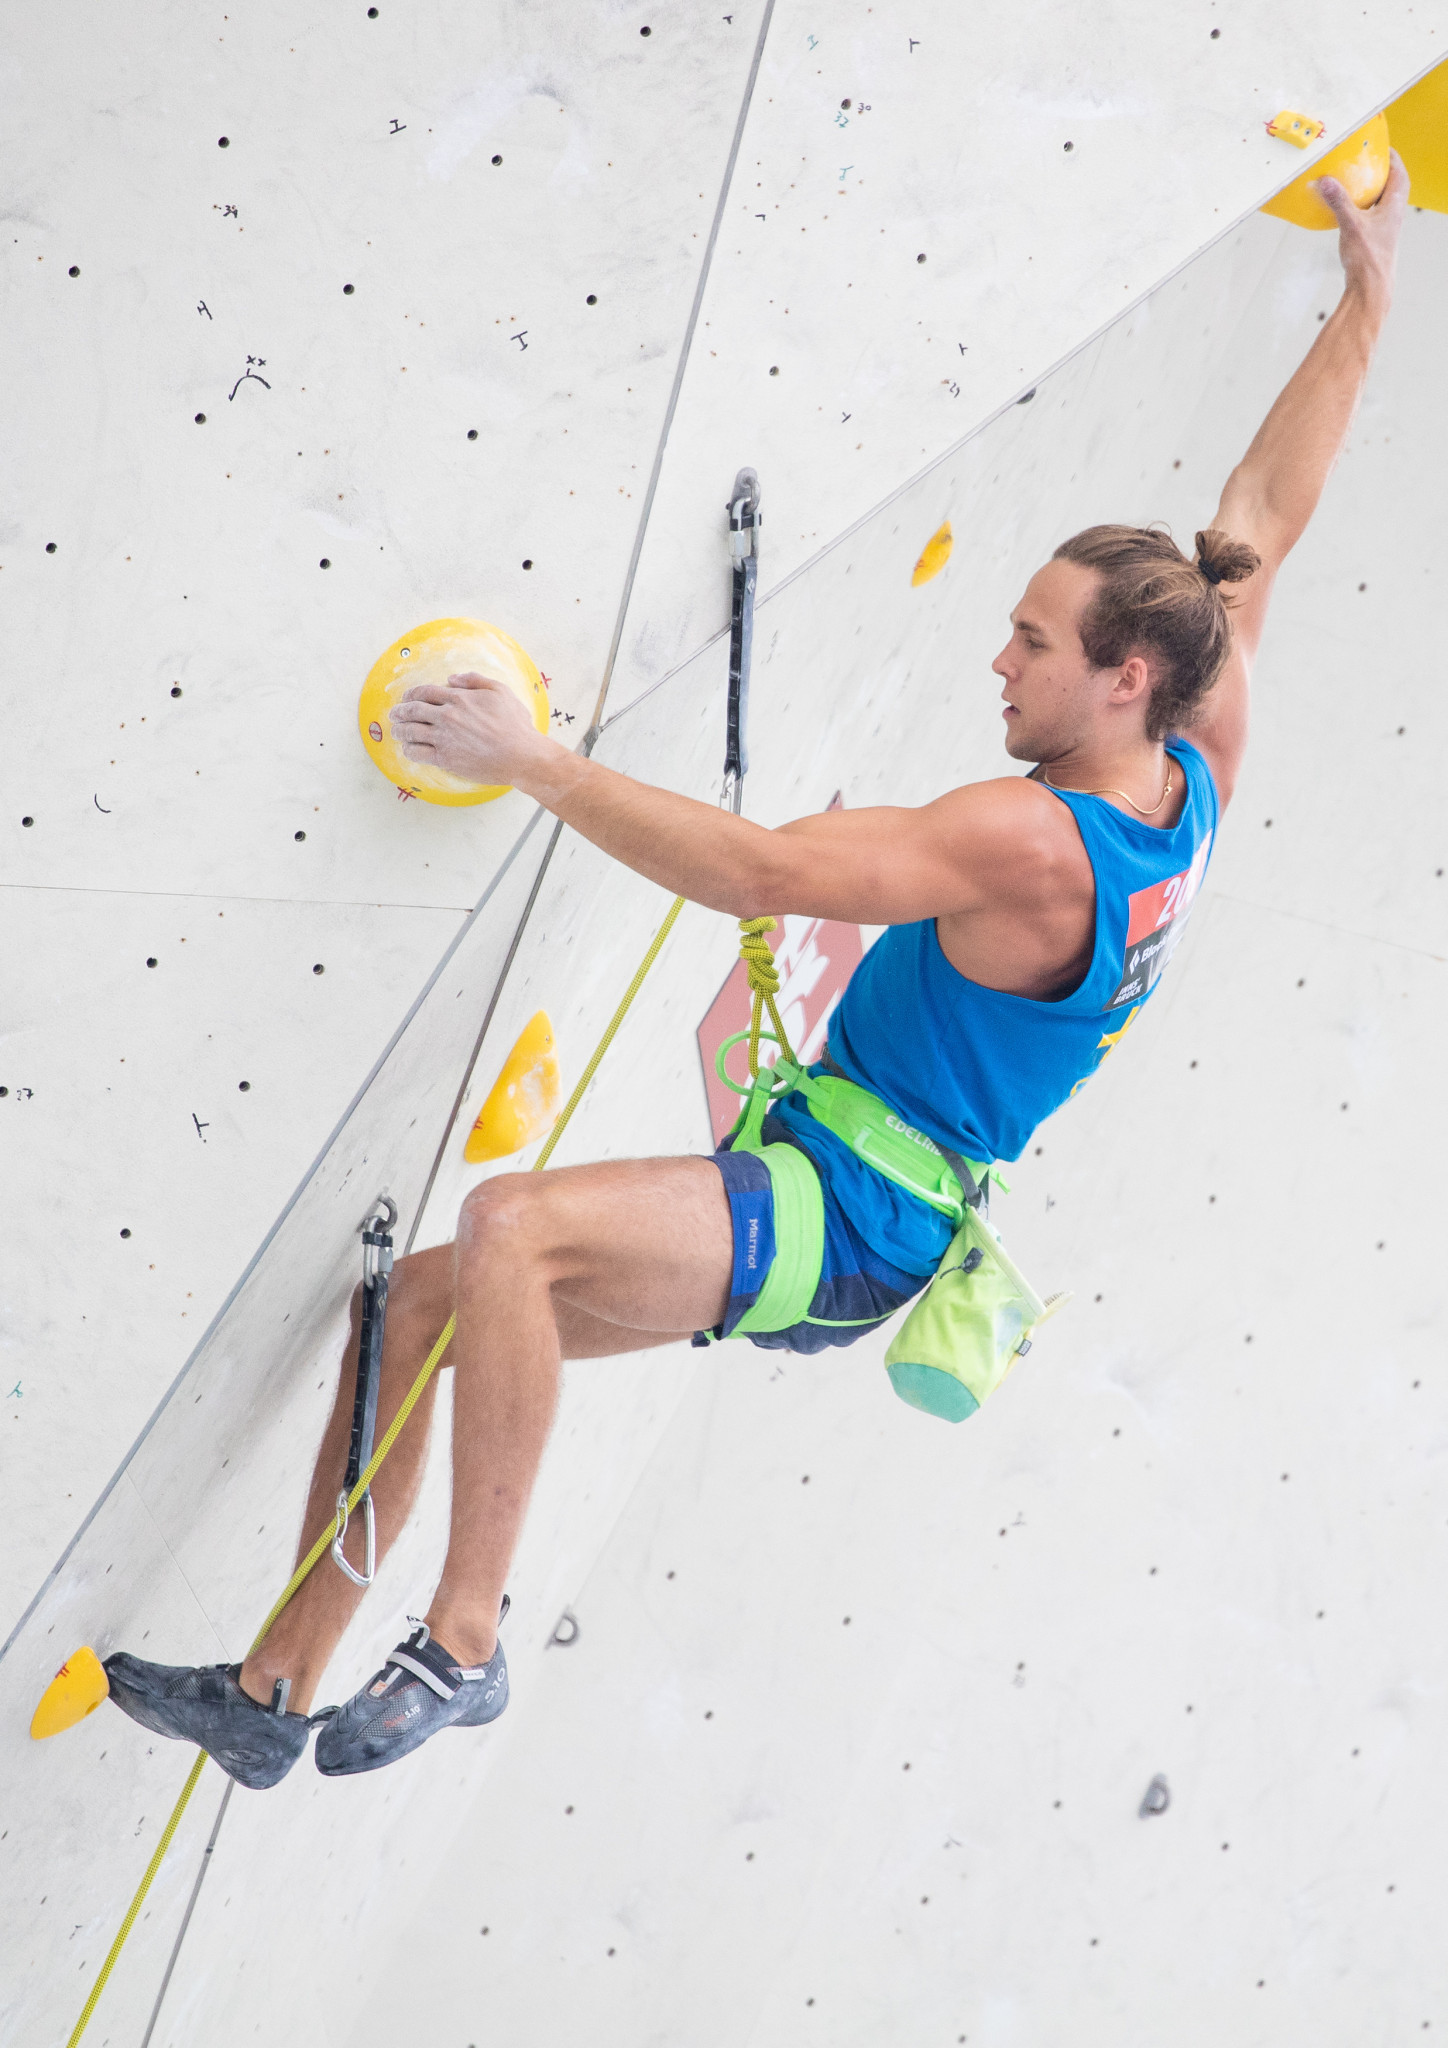 Hannes Puman of Sweden topped the men's lead qualifying at the IFSC European Championships ©Getty Images